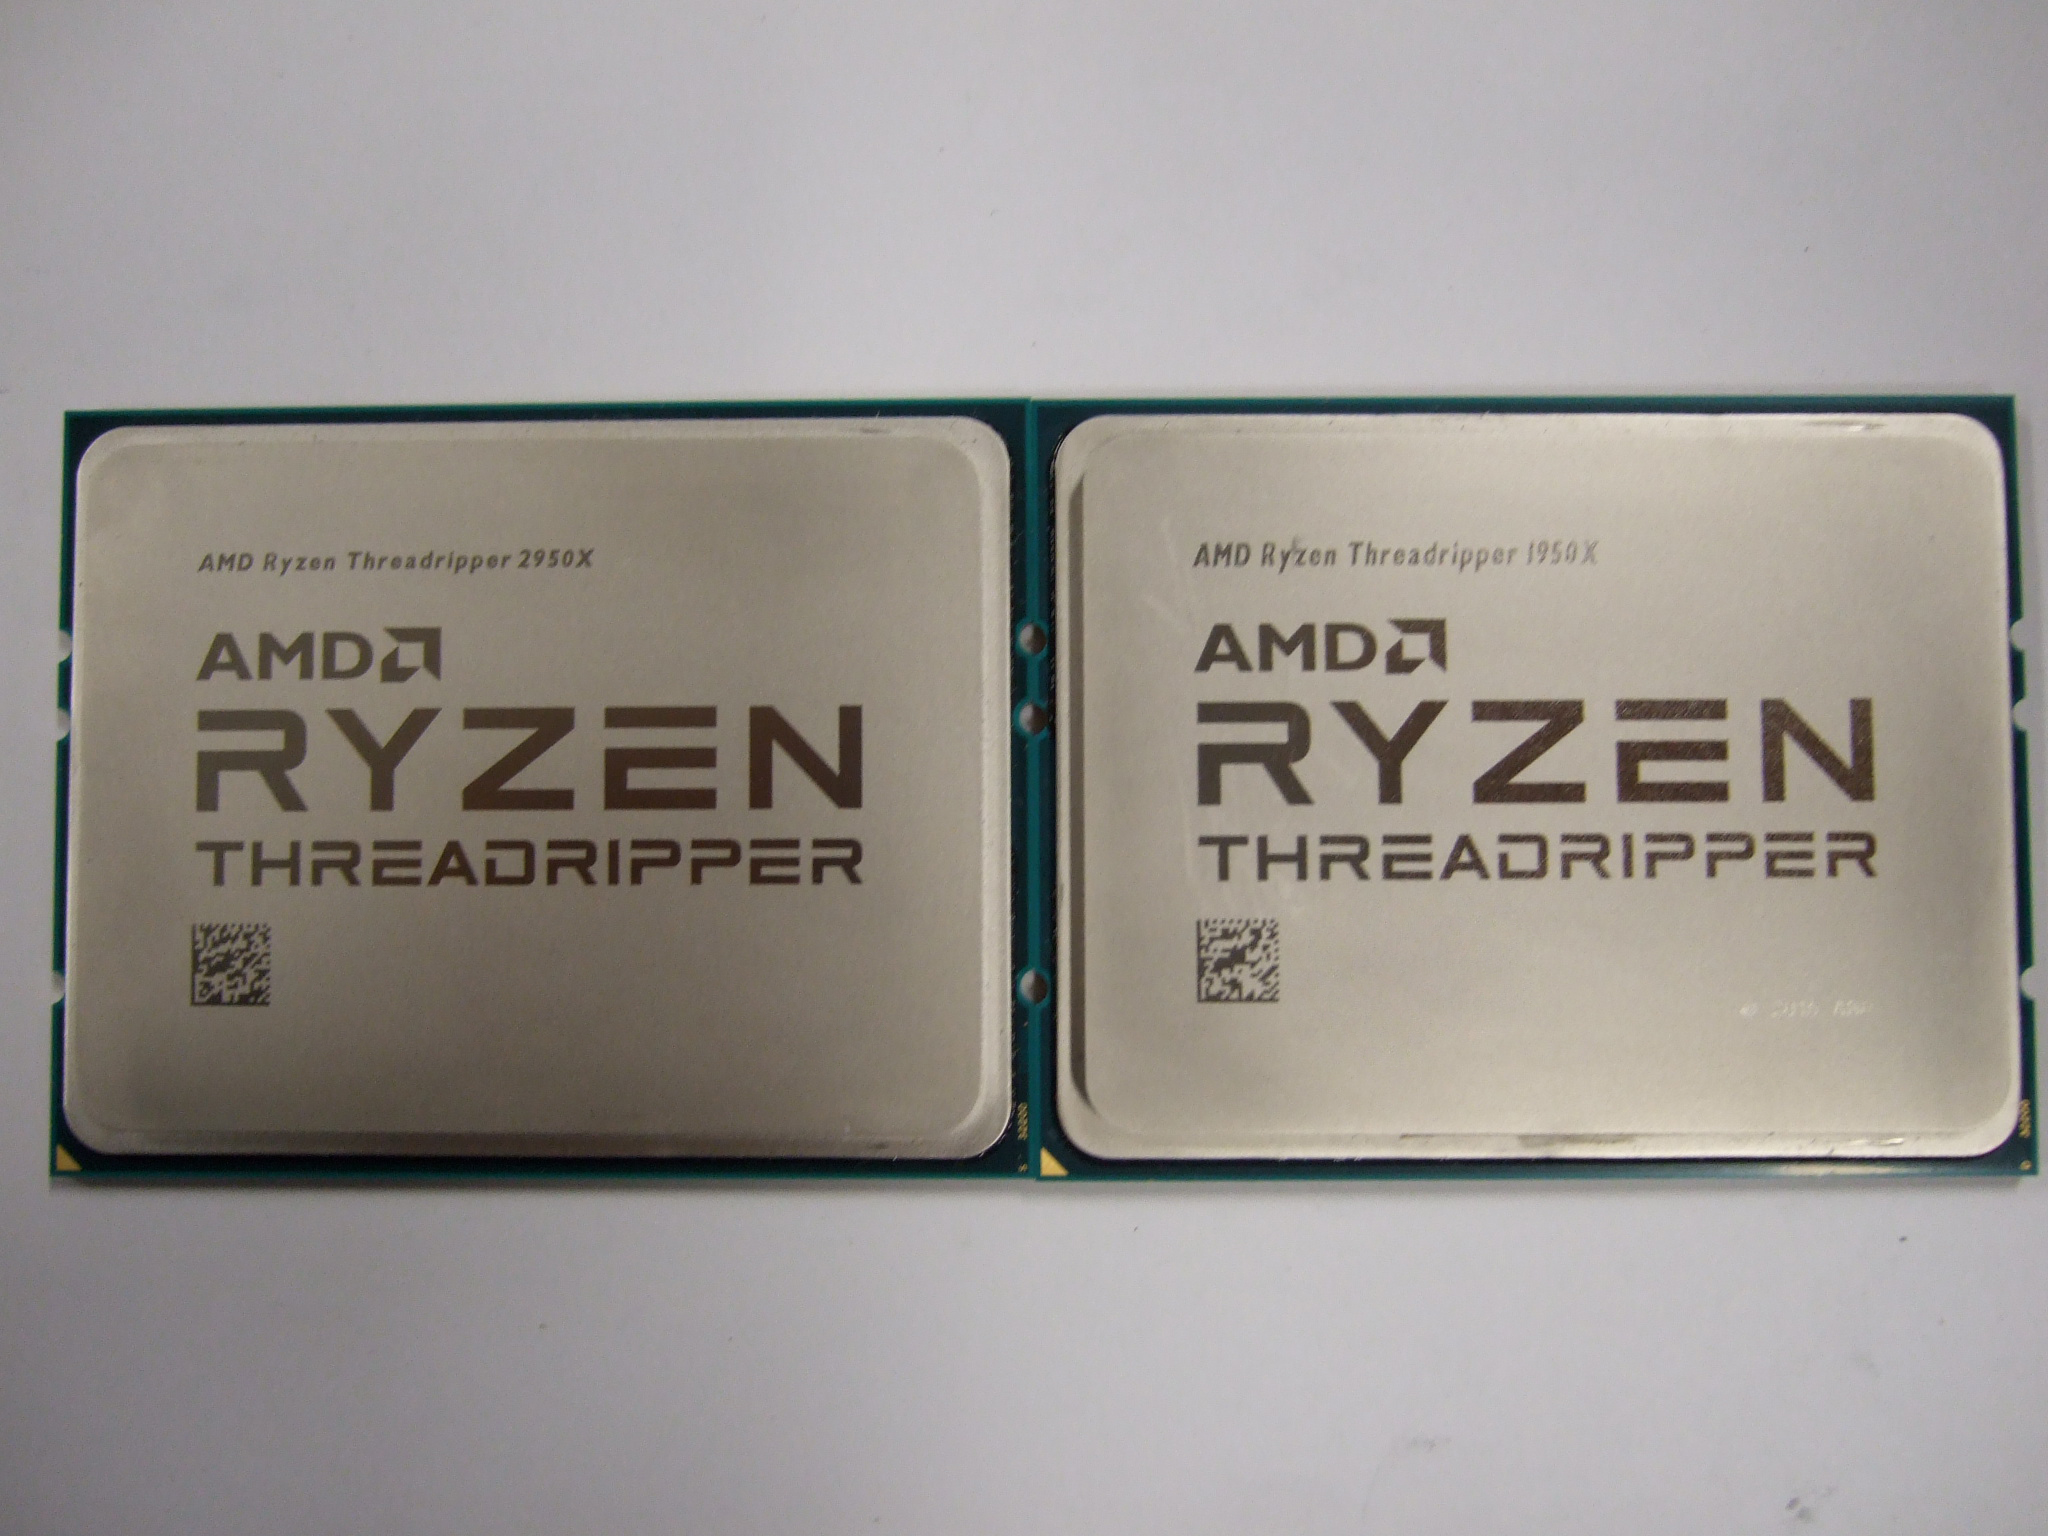 《左:Ryzen Threadripper 2950X / 右:Ryzen Threadripper 1950X 》上部の「AMD Ryzen Threadripper ~」の刻印が若干異なっています